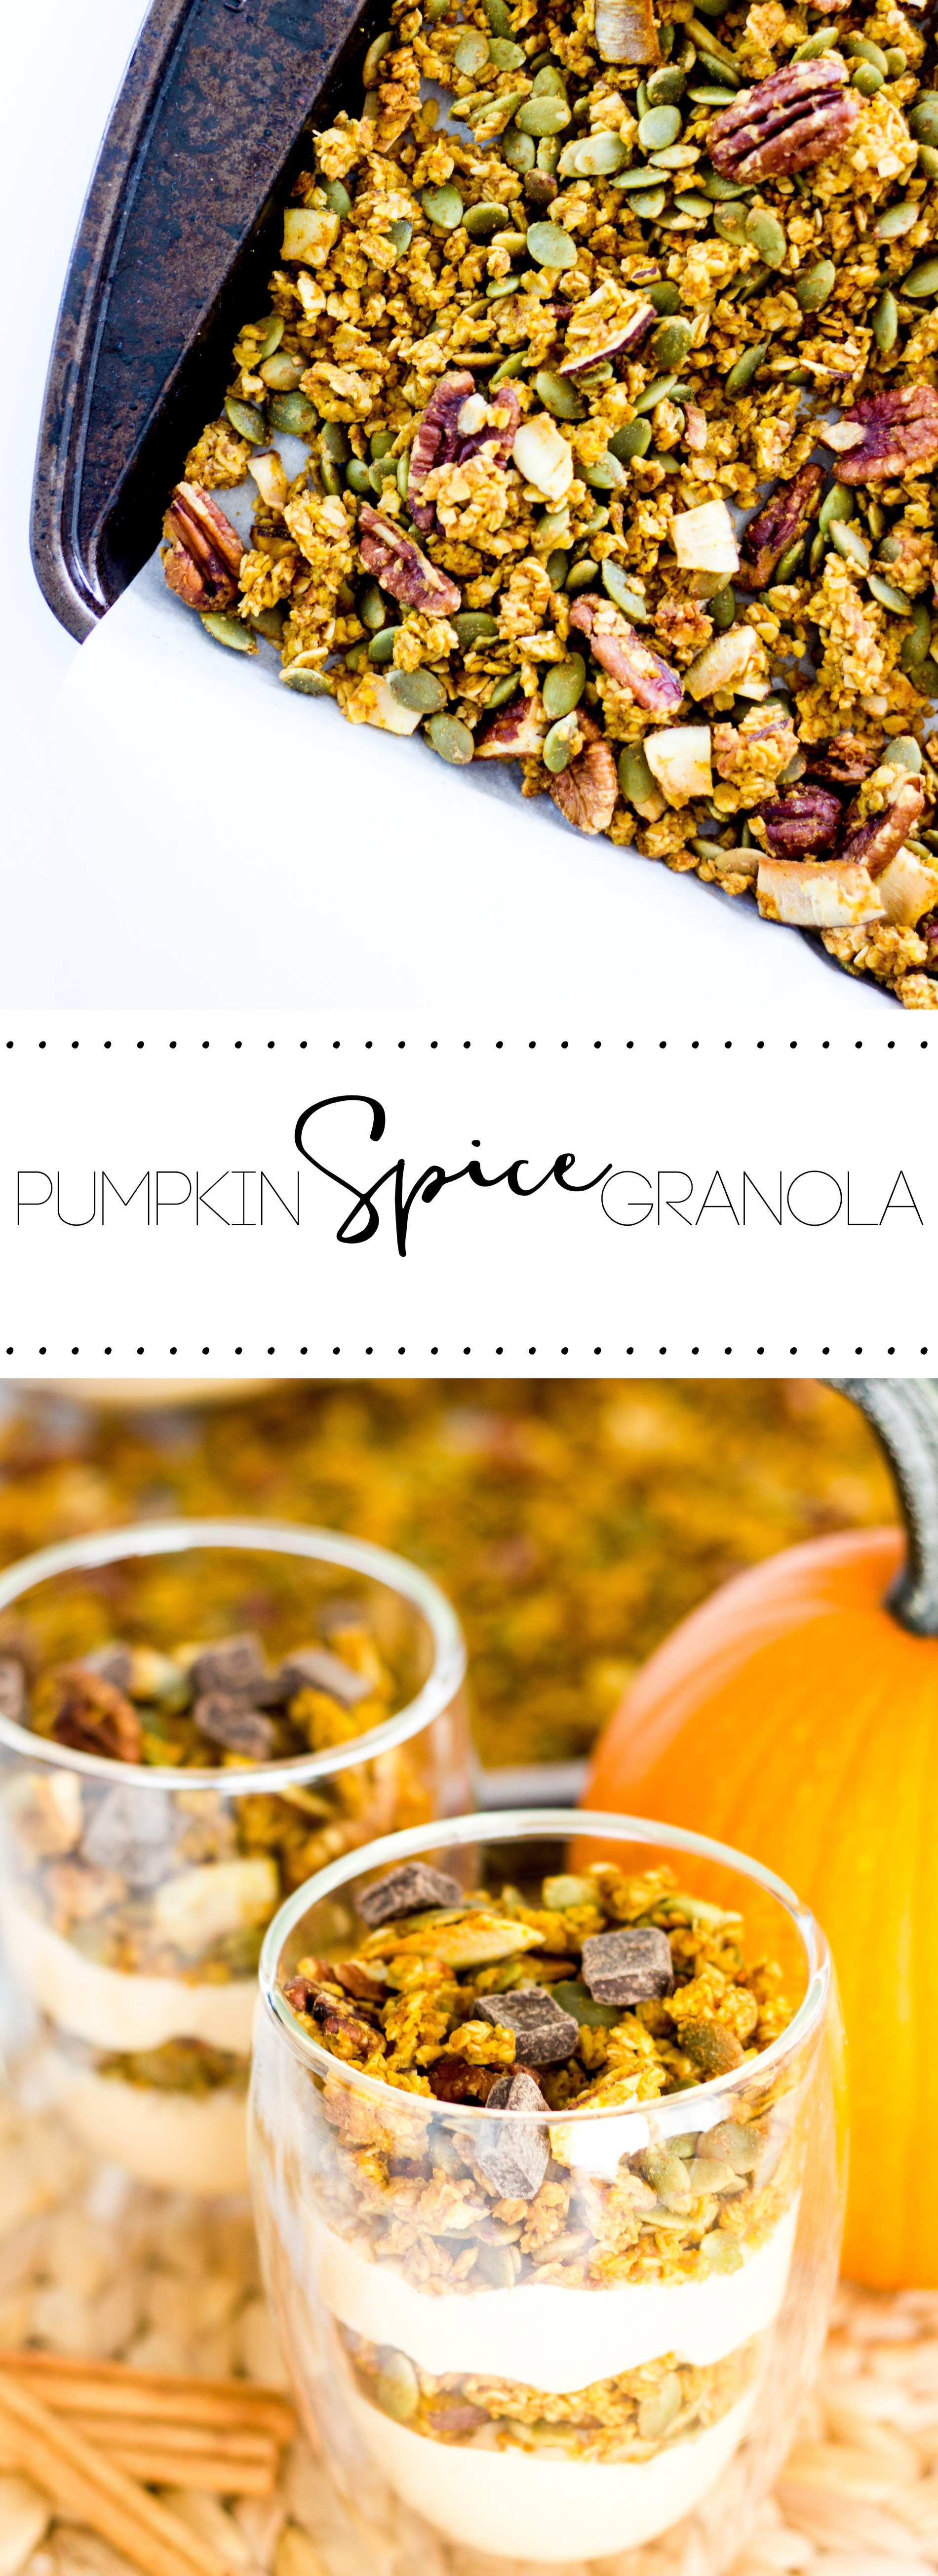 Pumpkin spice and everything nice— This crunchy pumpkin spice granola is the perfect healthy alternative to enjoying the seasonal flavor.